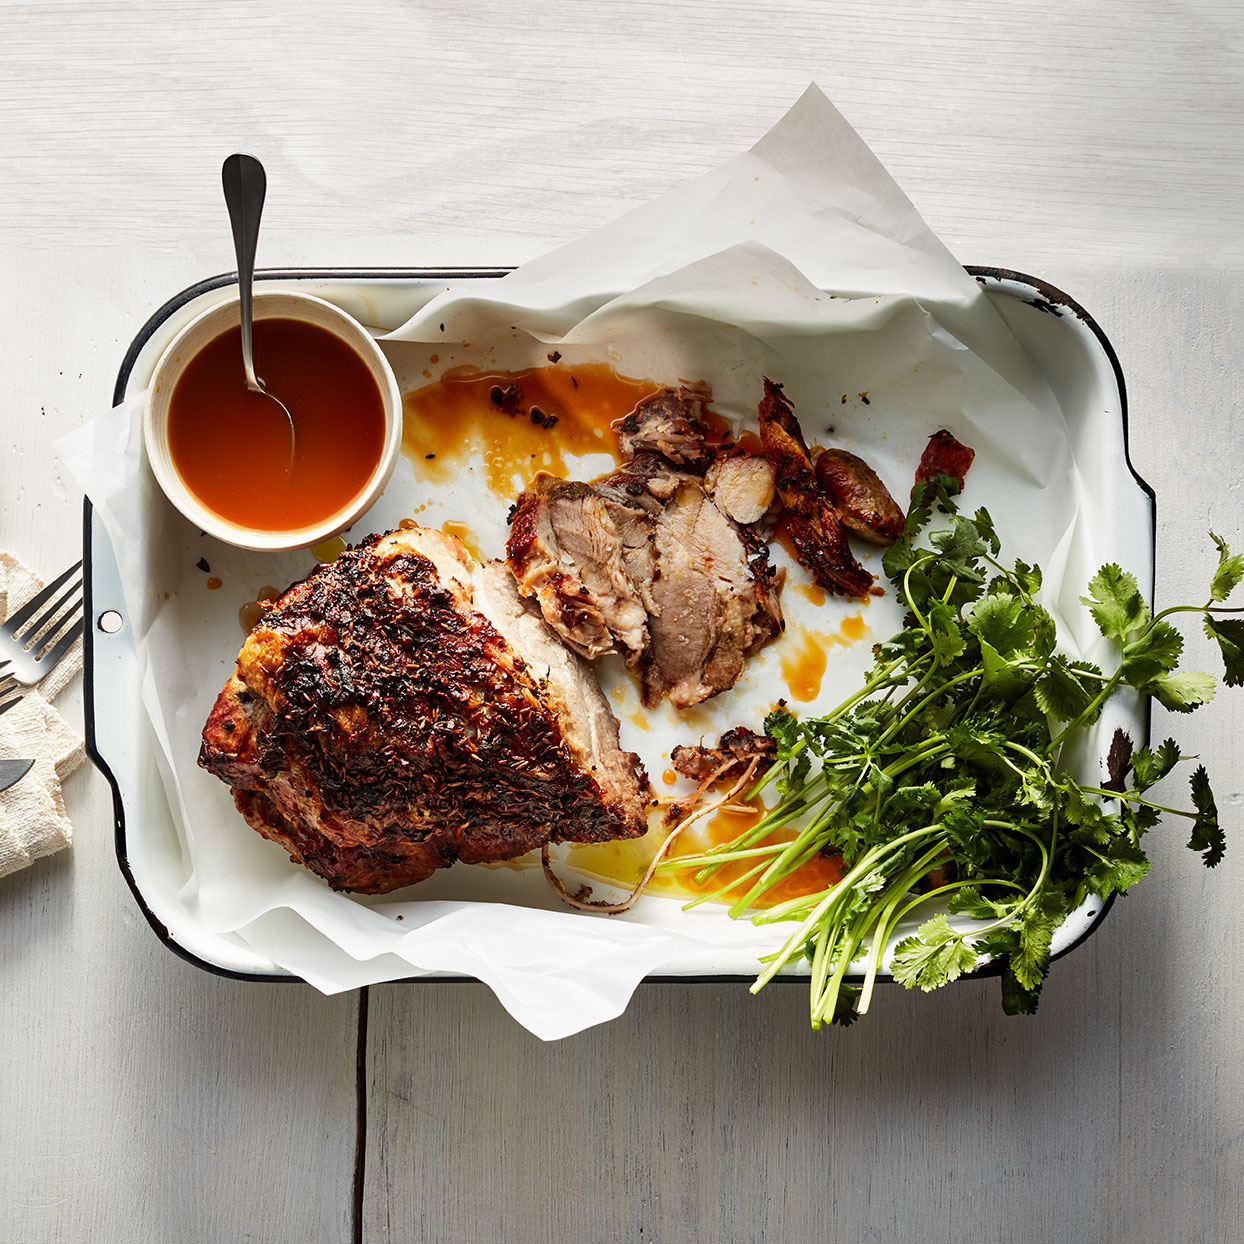 Pork shoulder makes a wonderful roast because it has enough fat to keep it moist and tender during low and slow cooking. The citrus sauce has a smoky, agave sweetness from the tequila and produces a bright counterpoint to the unctuous meat. Serve any extra sauce for dipping. Source: EatingWell Magazine, December 2019